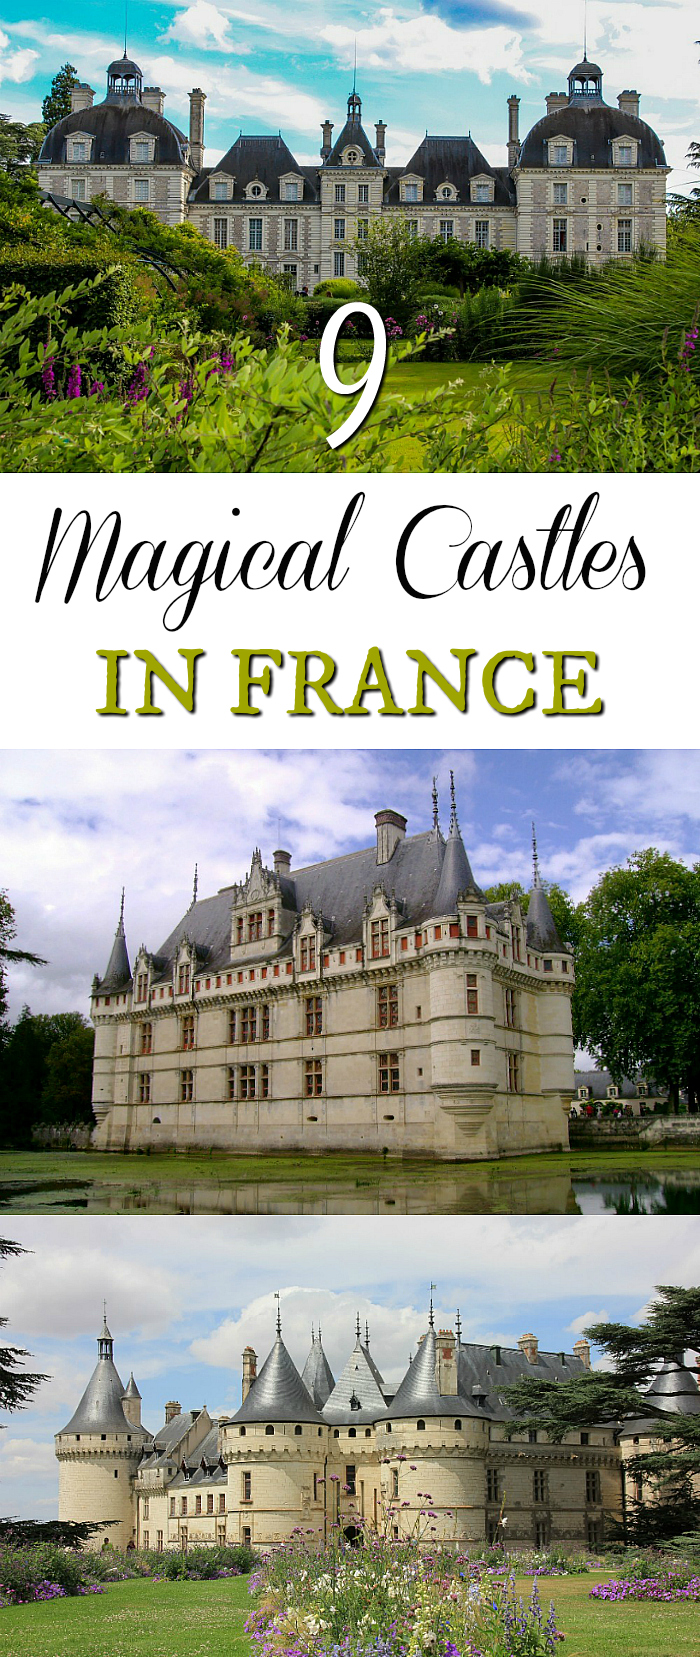 Magical castles in france, chateaus in France